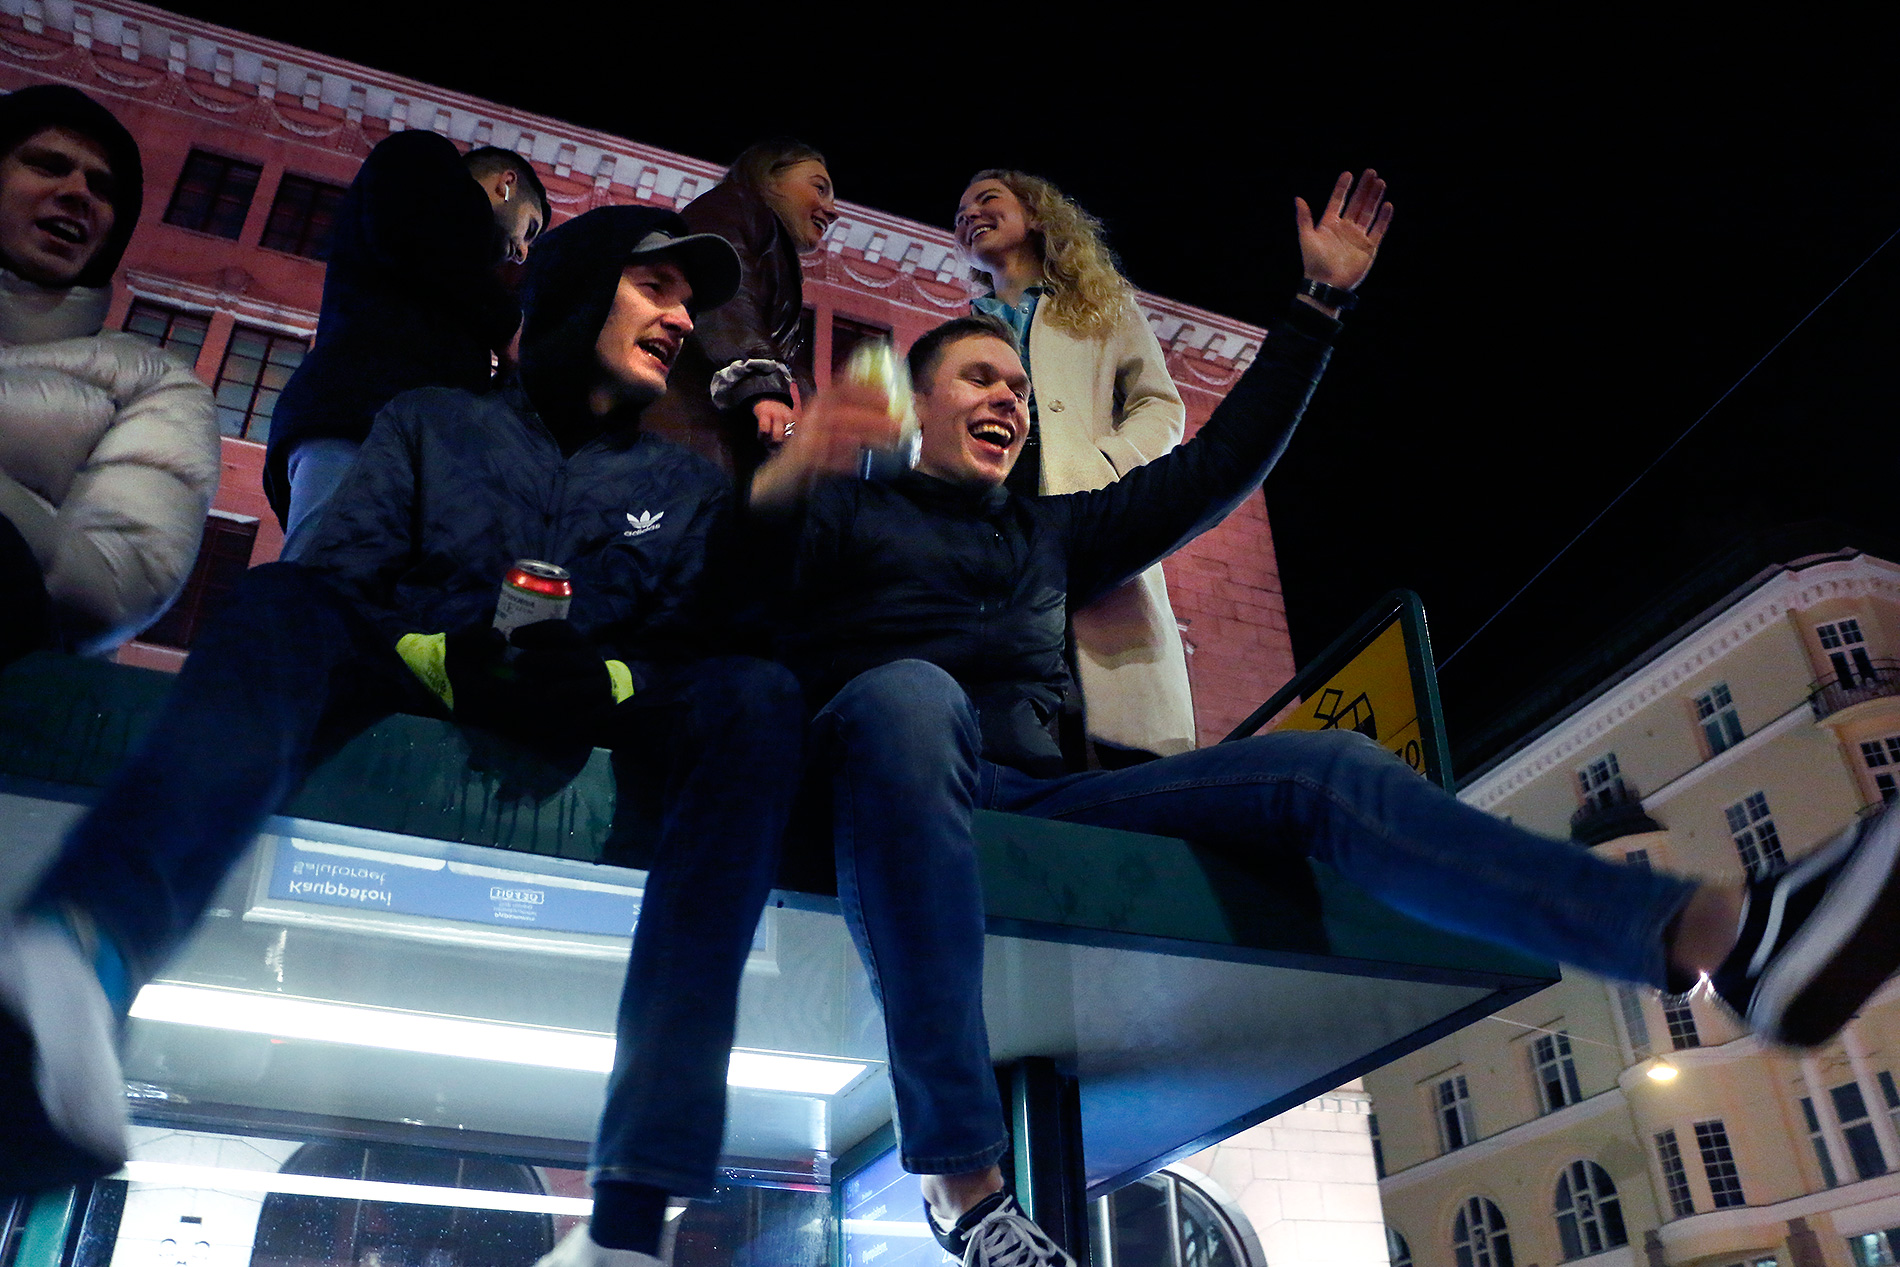 Celebrating on top of the tram stop. Picture: Tony Öhberg for Finland Today